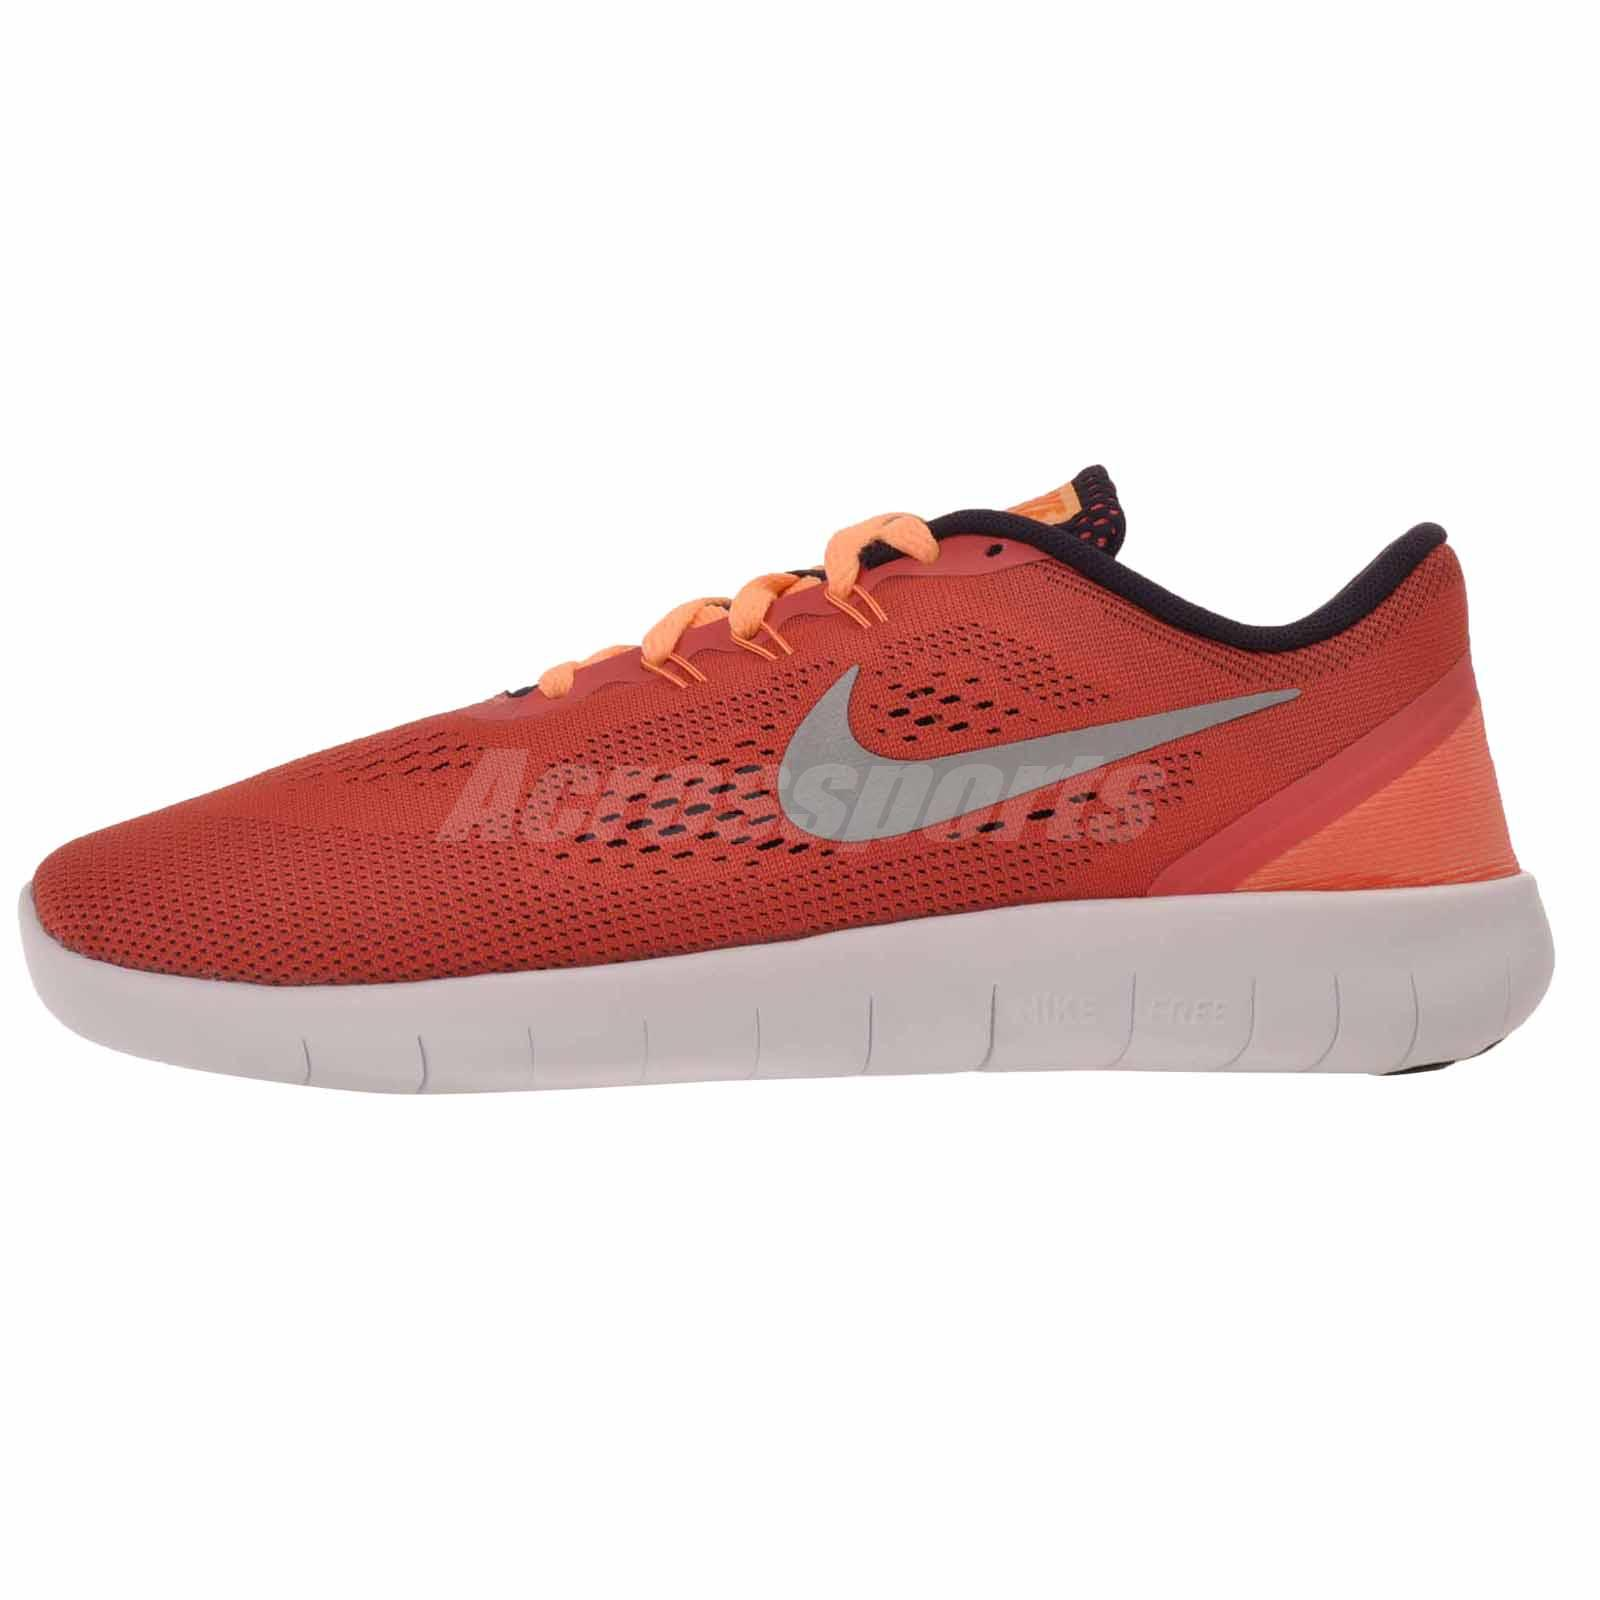 Details about Nike Free RN GS Kids Youth Womens Running Shoes Ember Glow 833993 801